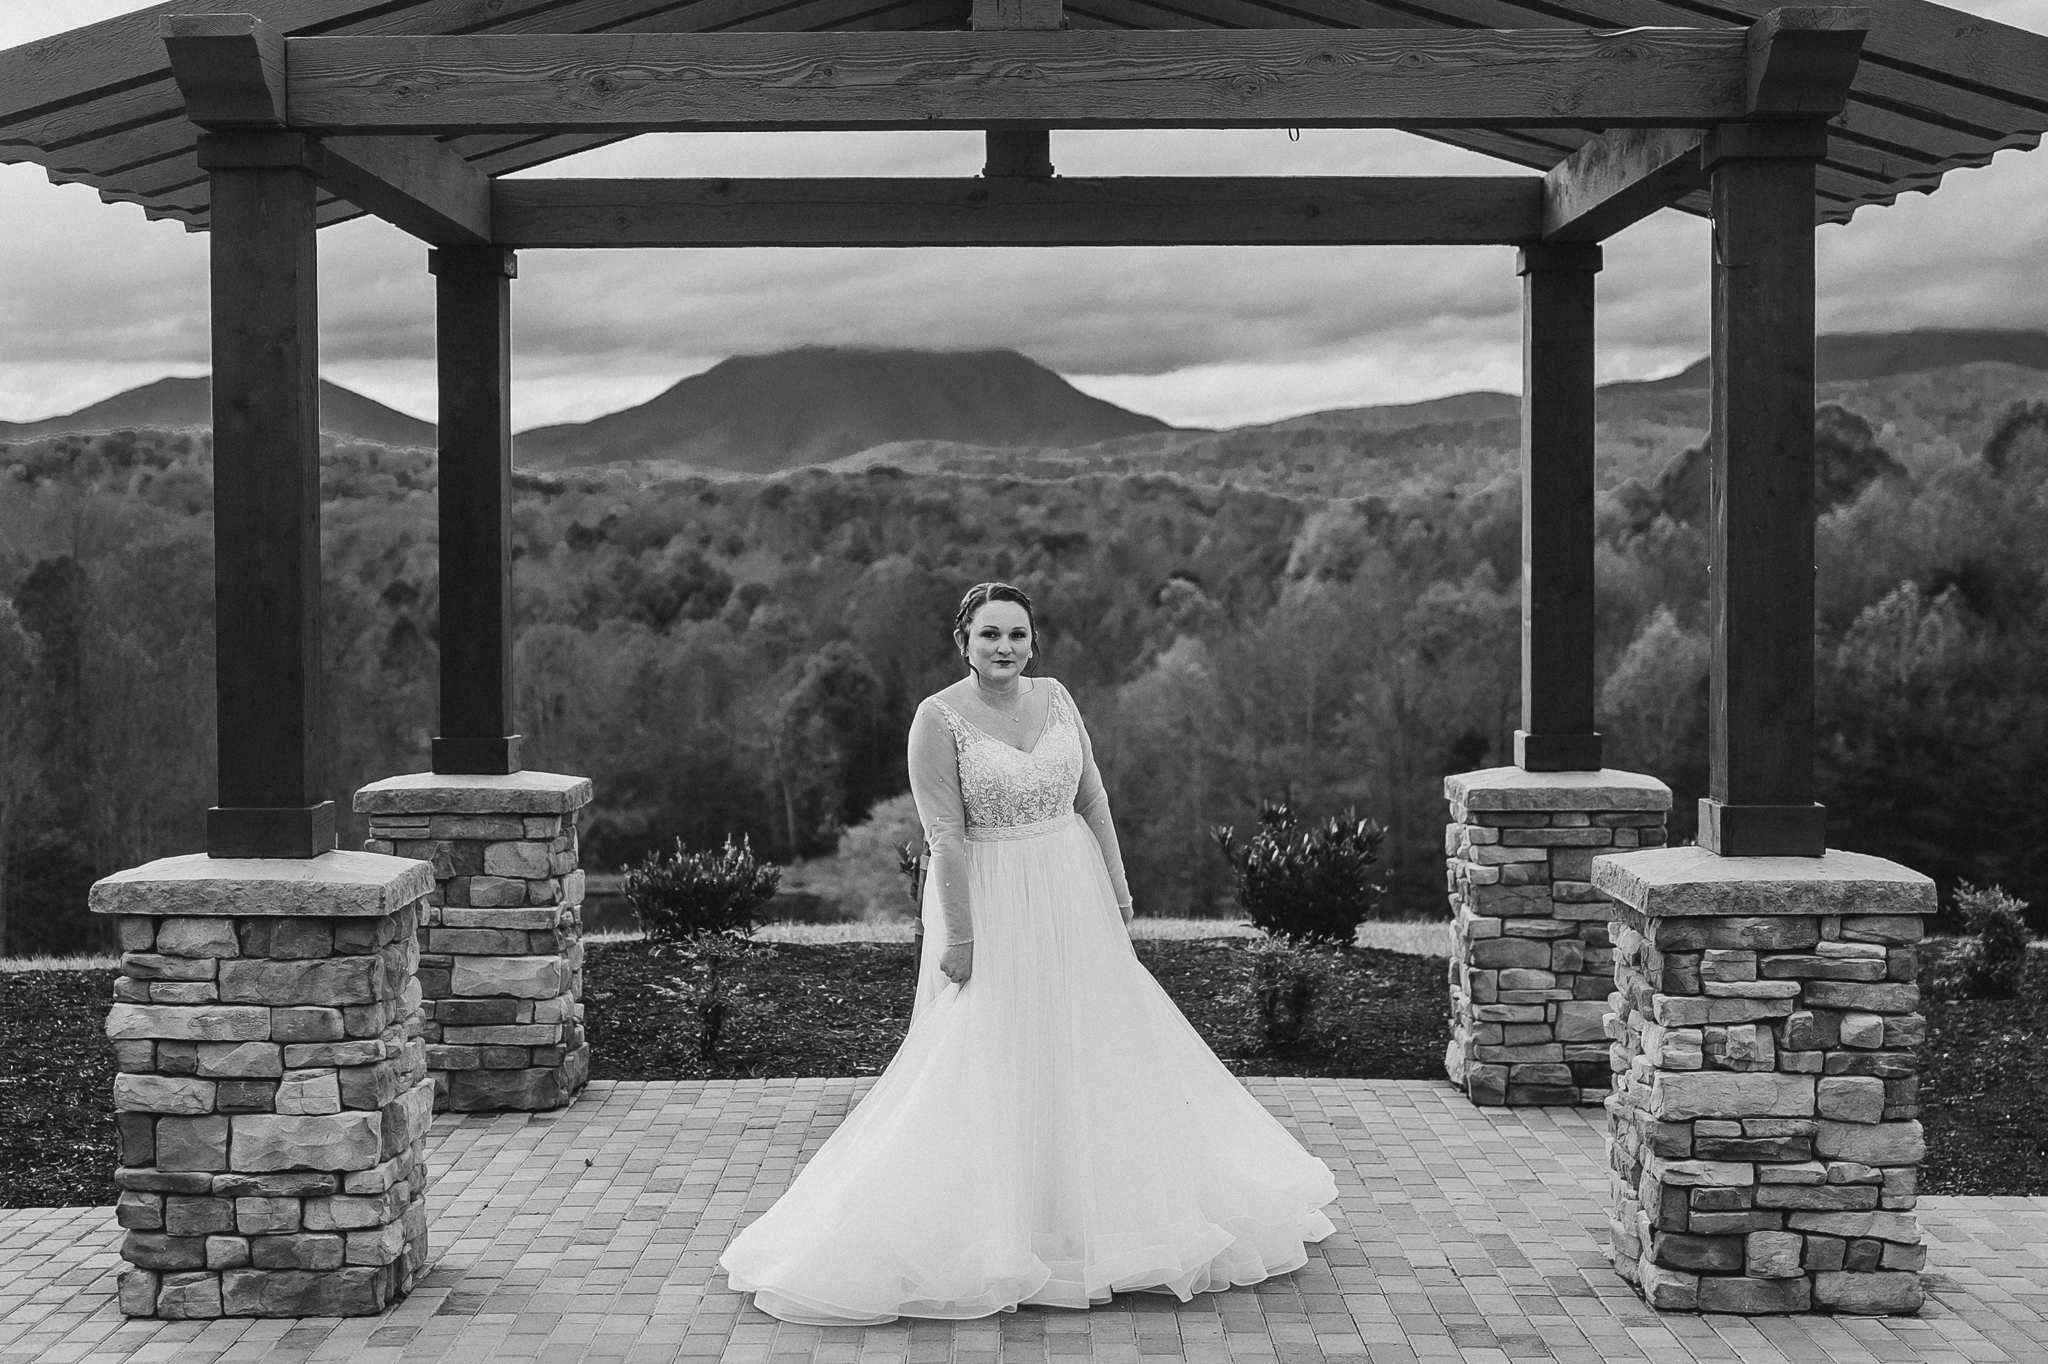 Bride_in_wedding_dress_on_mountaintop_at_glass_hill_venue_Ynchburg_virginia_overlooking_blue_ridge_mountain_by_jonathan_and_hannah_photography